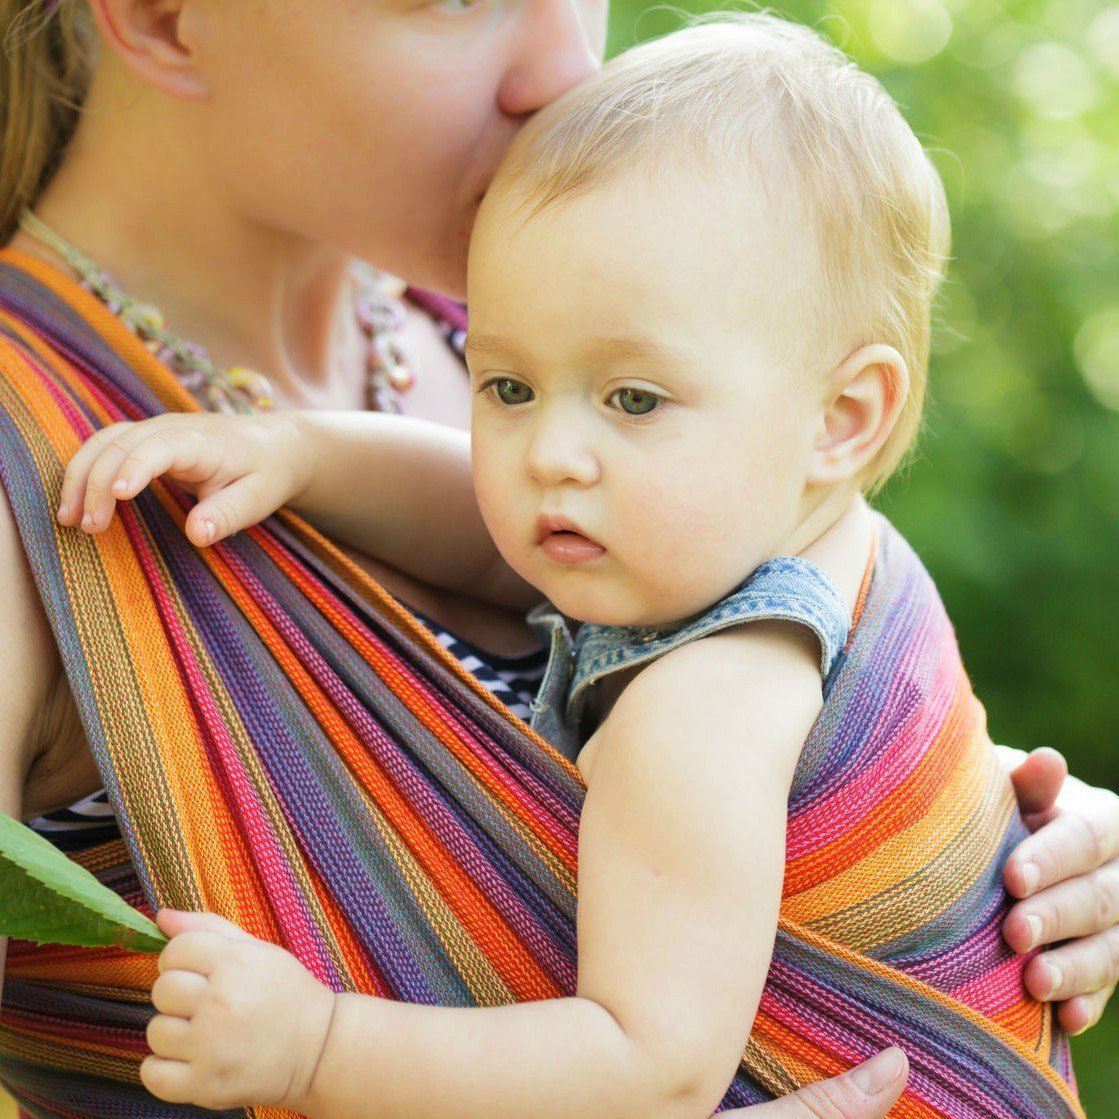 New Regulations Introduced For Infant Sling Carriers